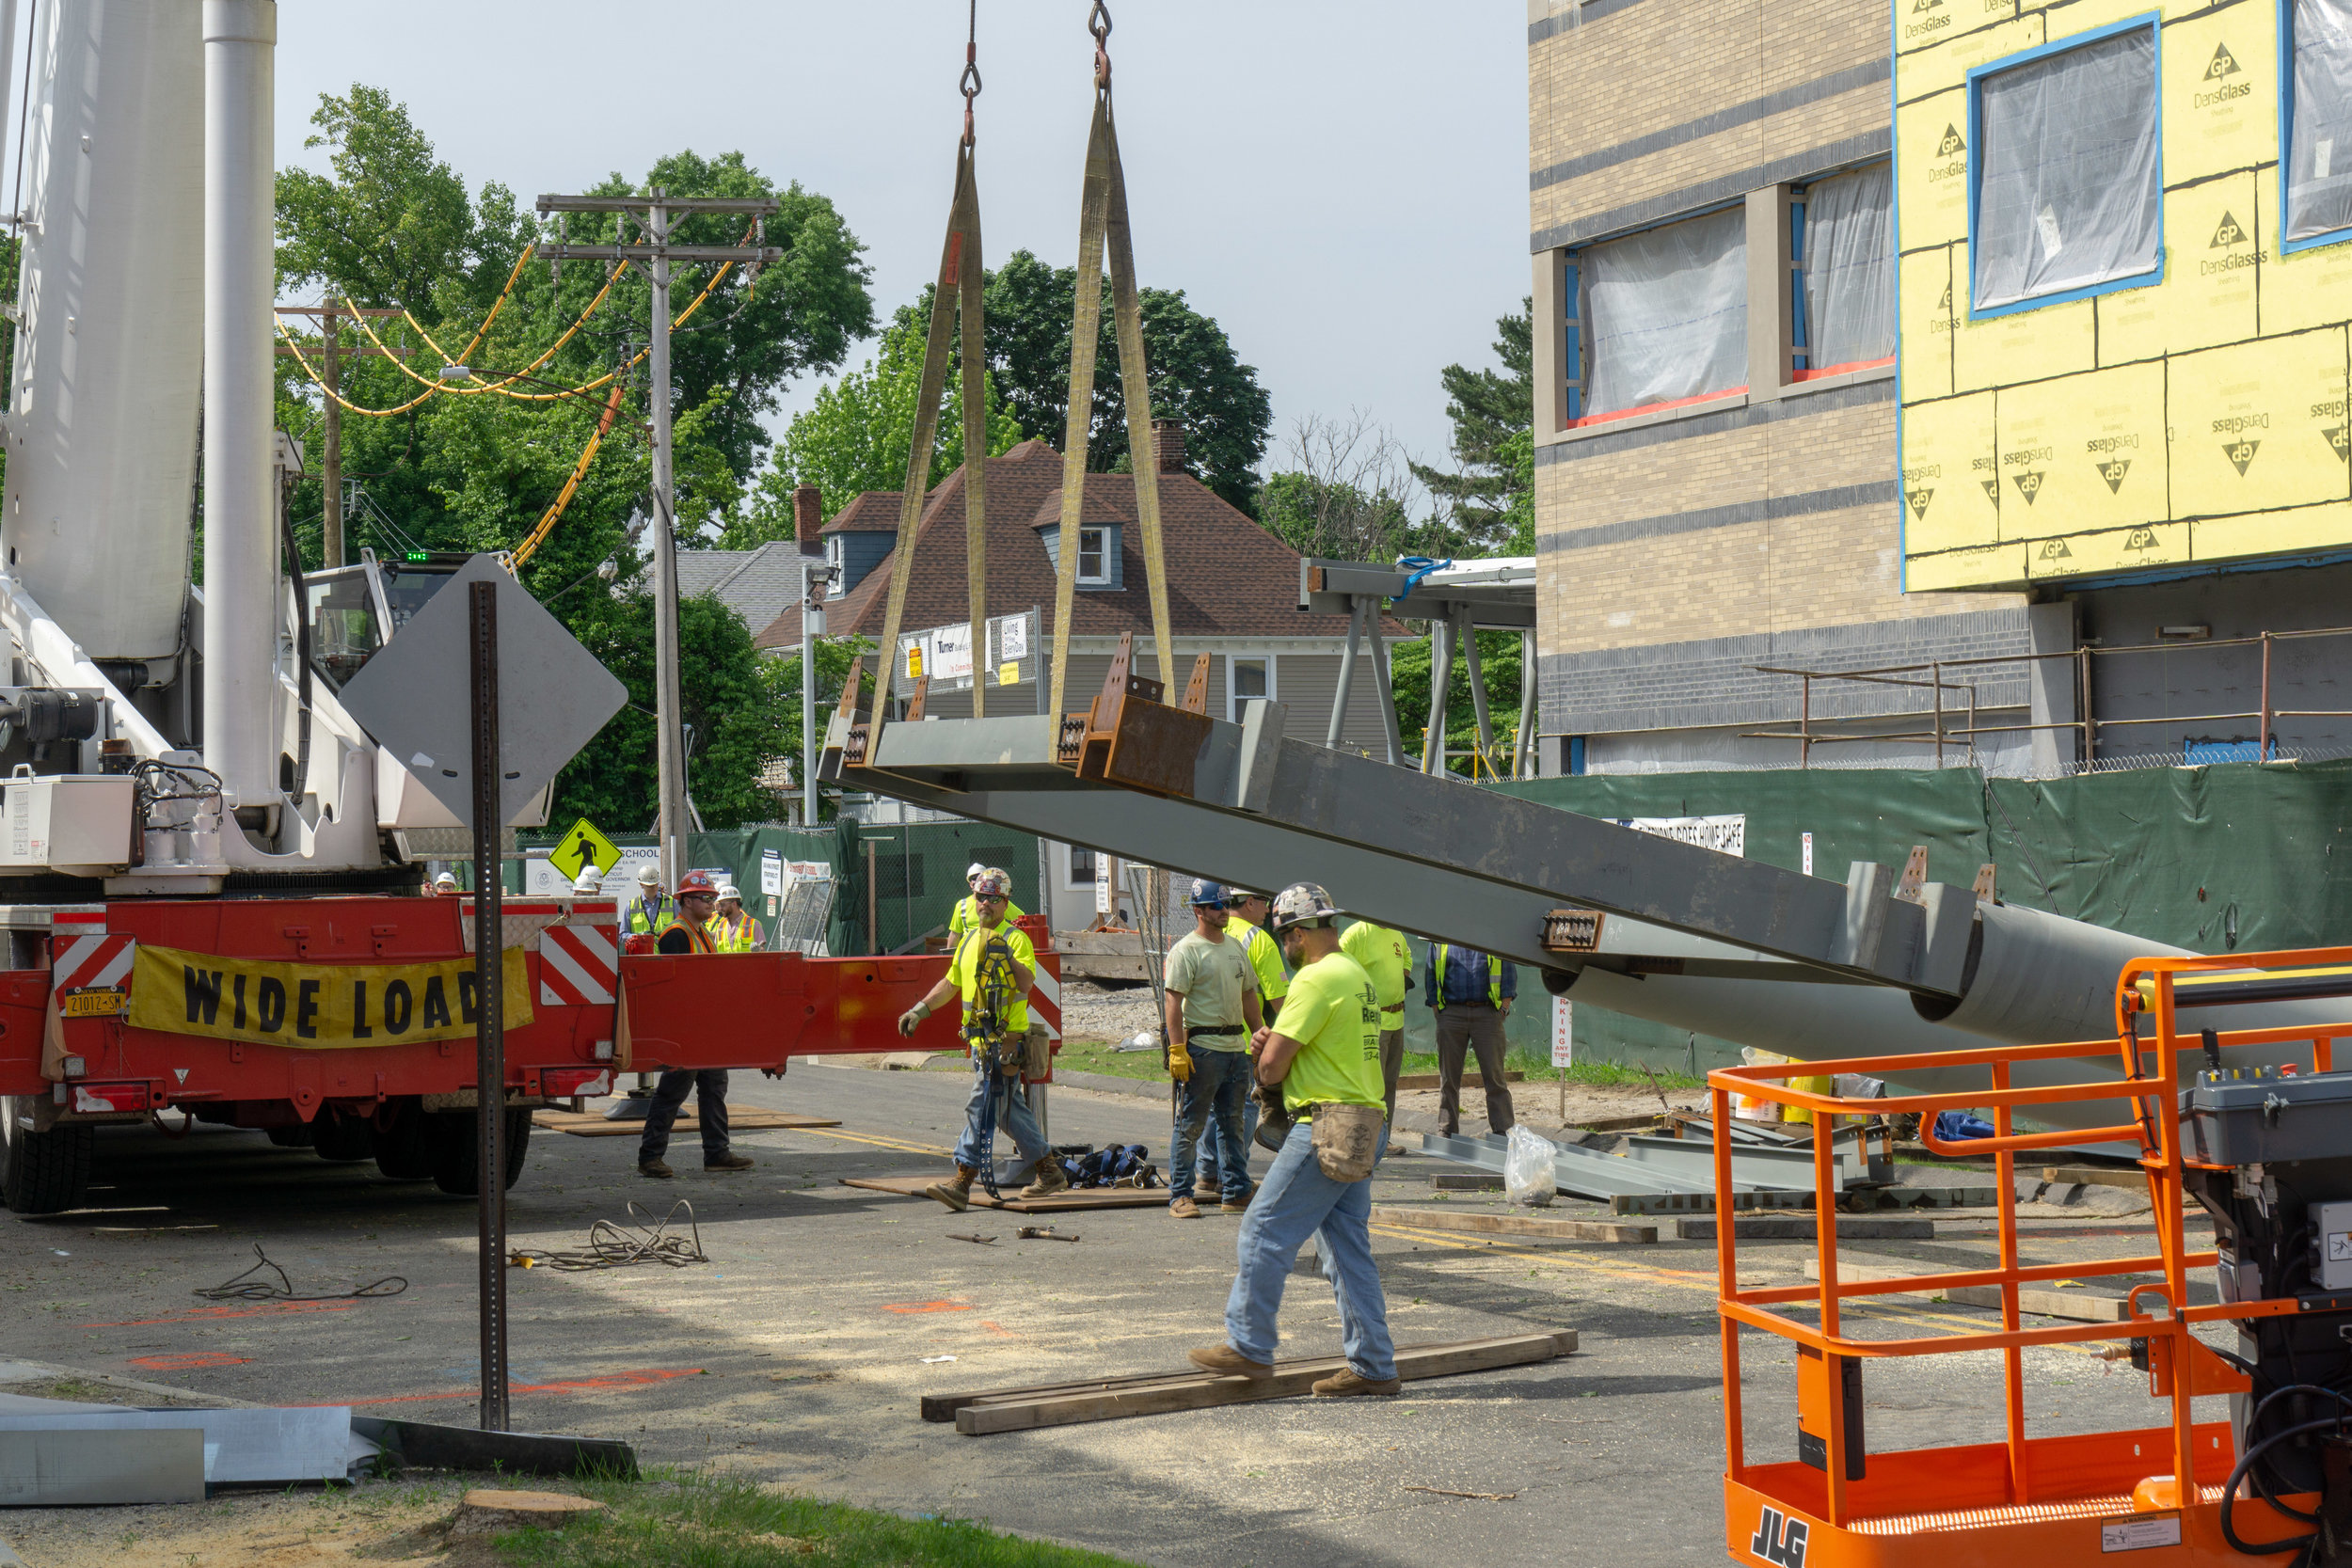 Stratford High School Construction 0007 2018-06-08.jpg